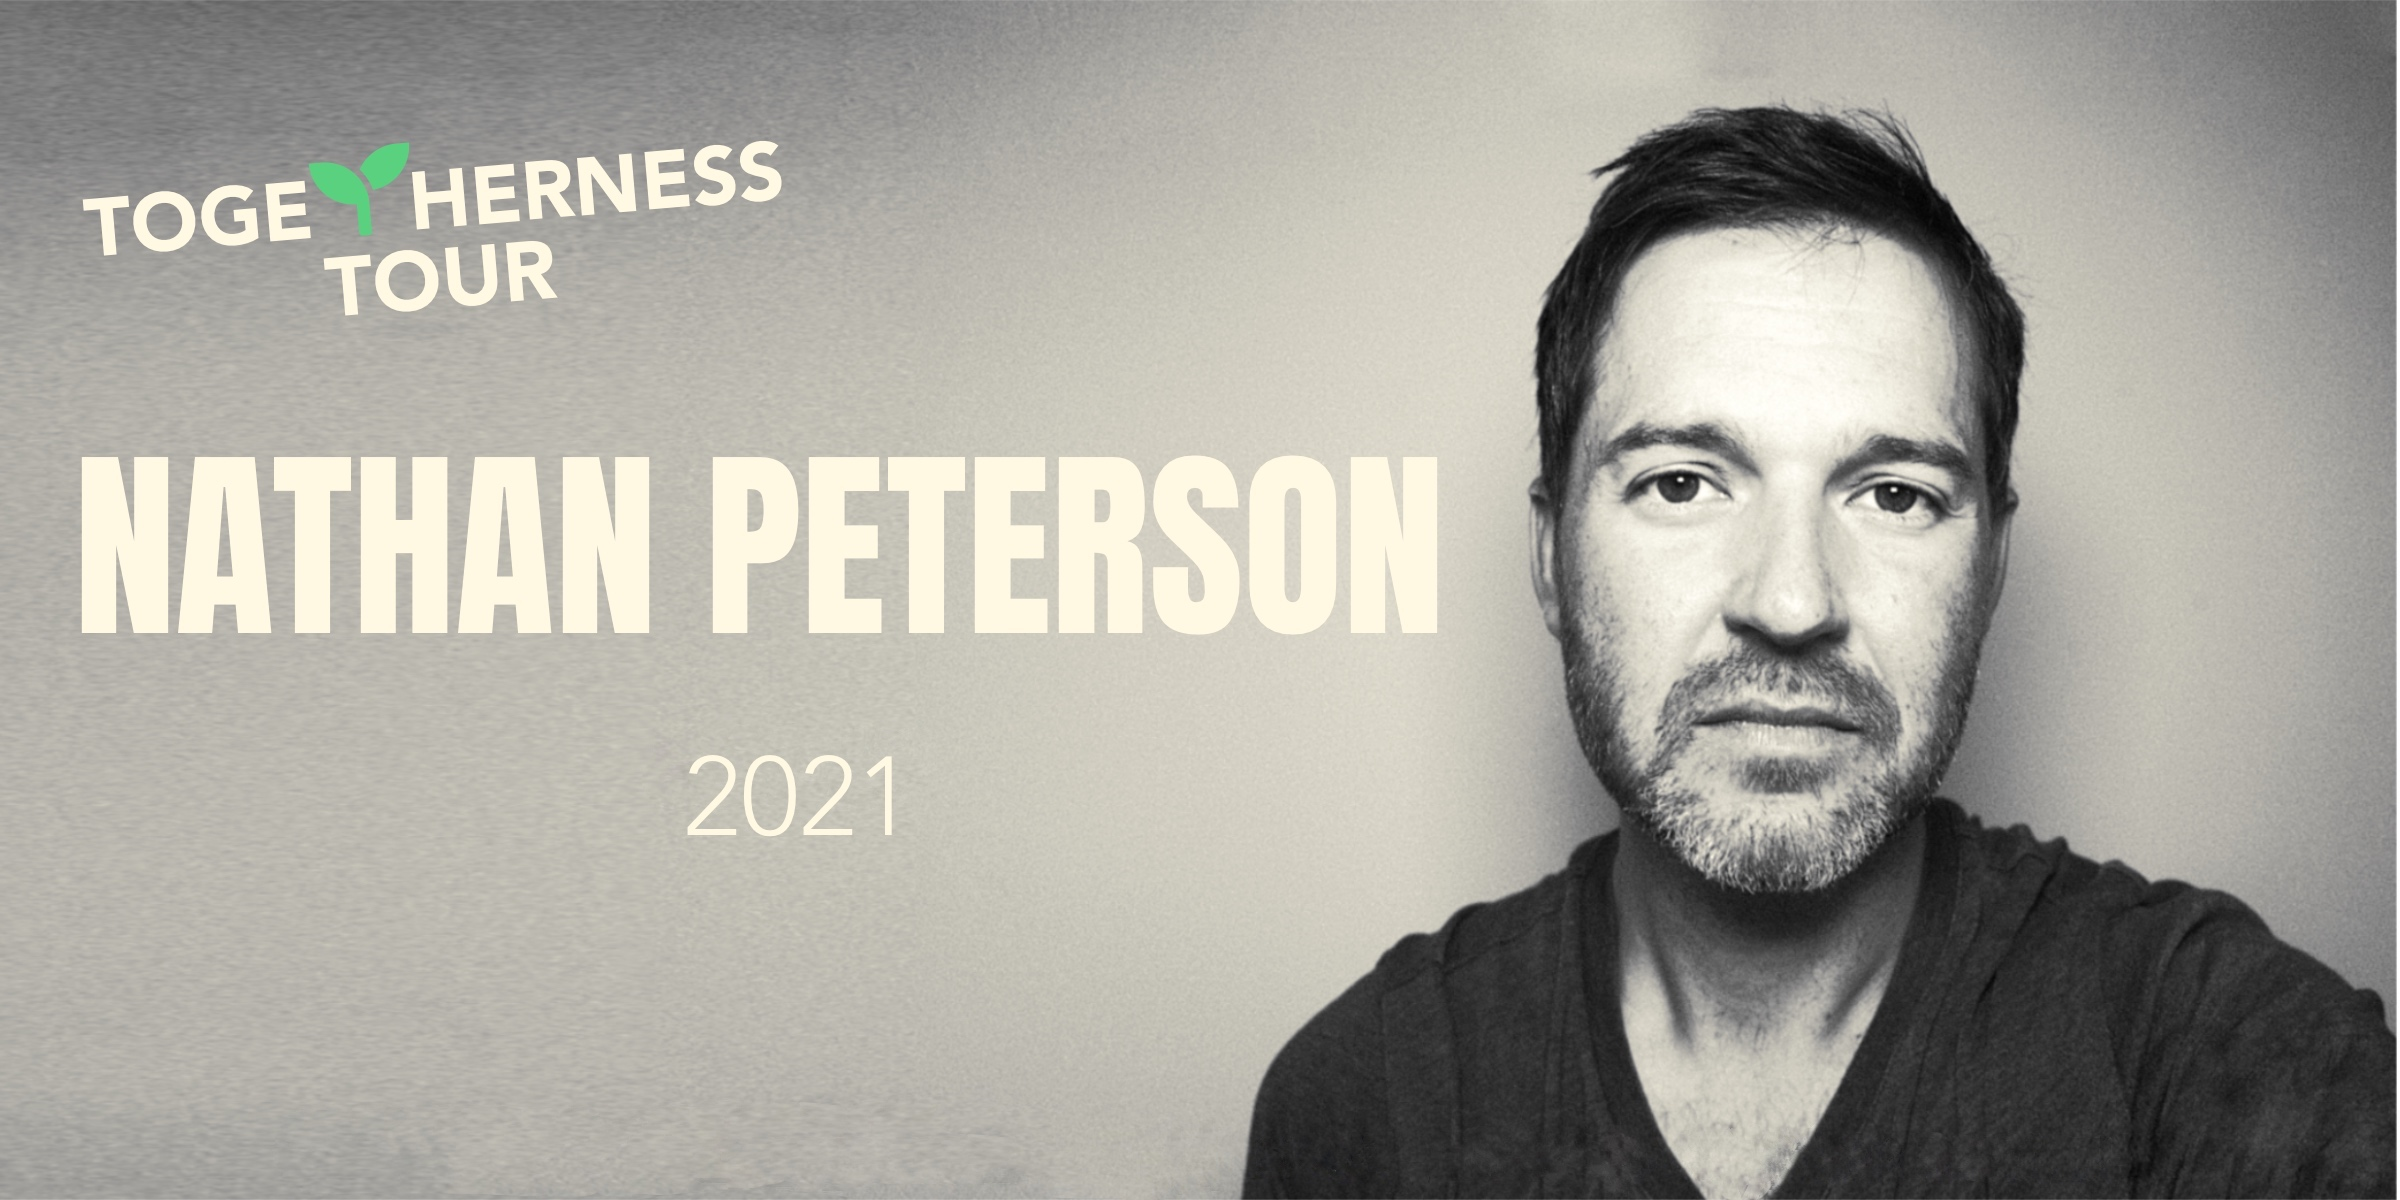 Nathan Peterson Togetherness Tour: a concert for breathing and being together again